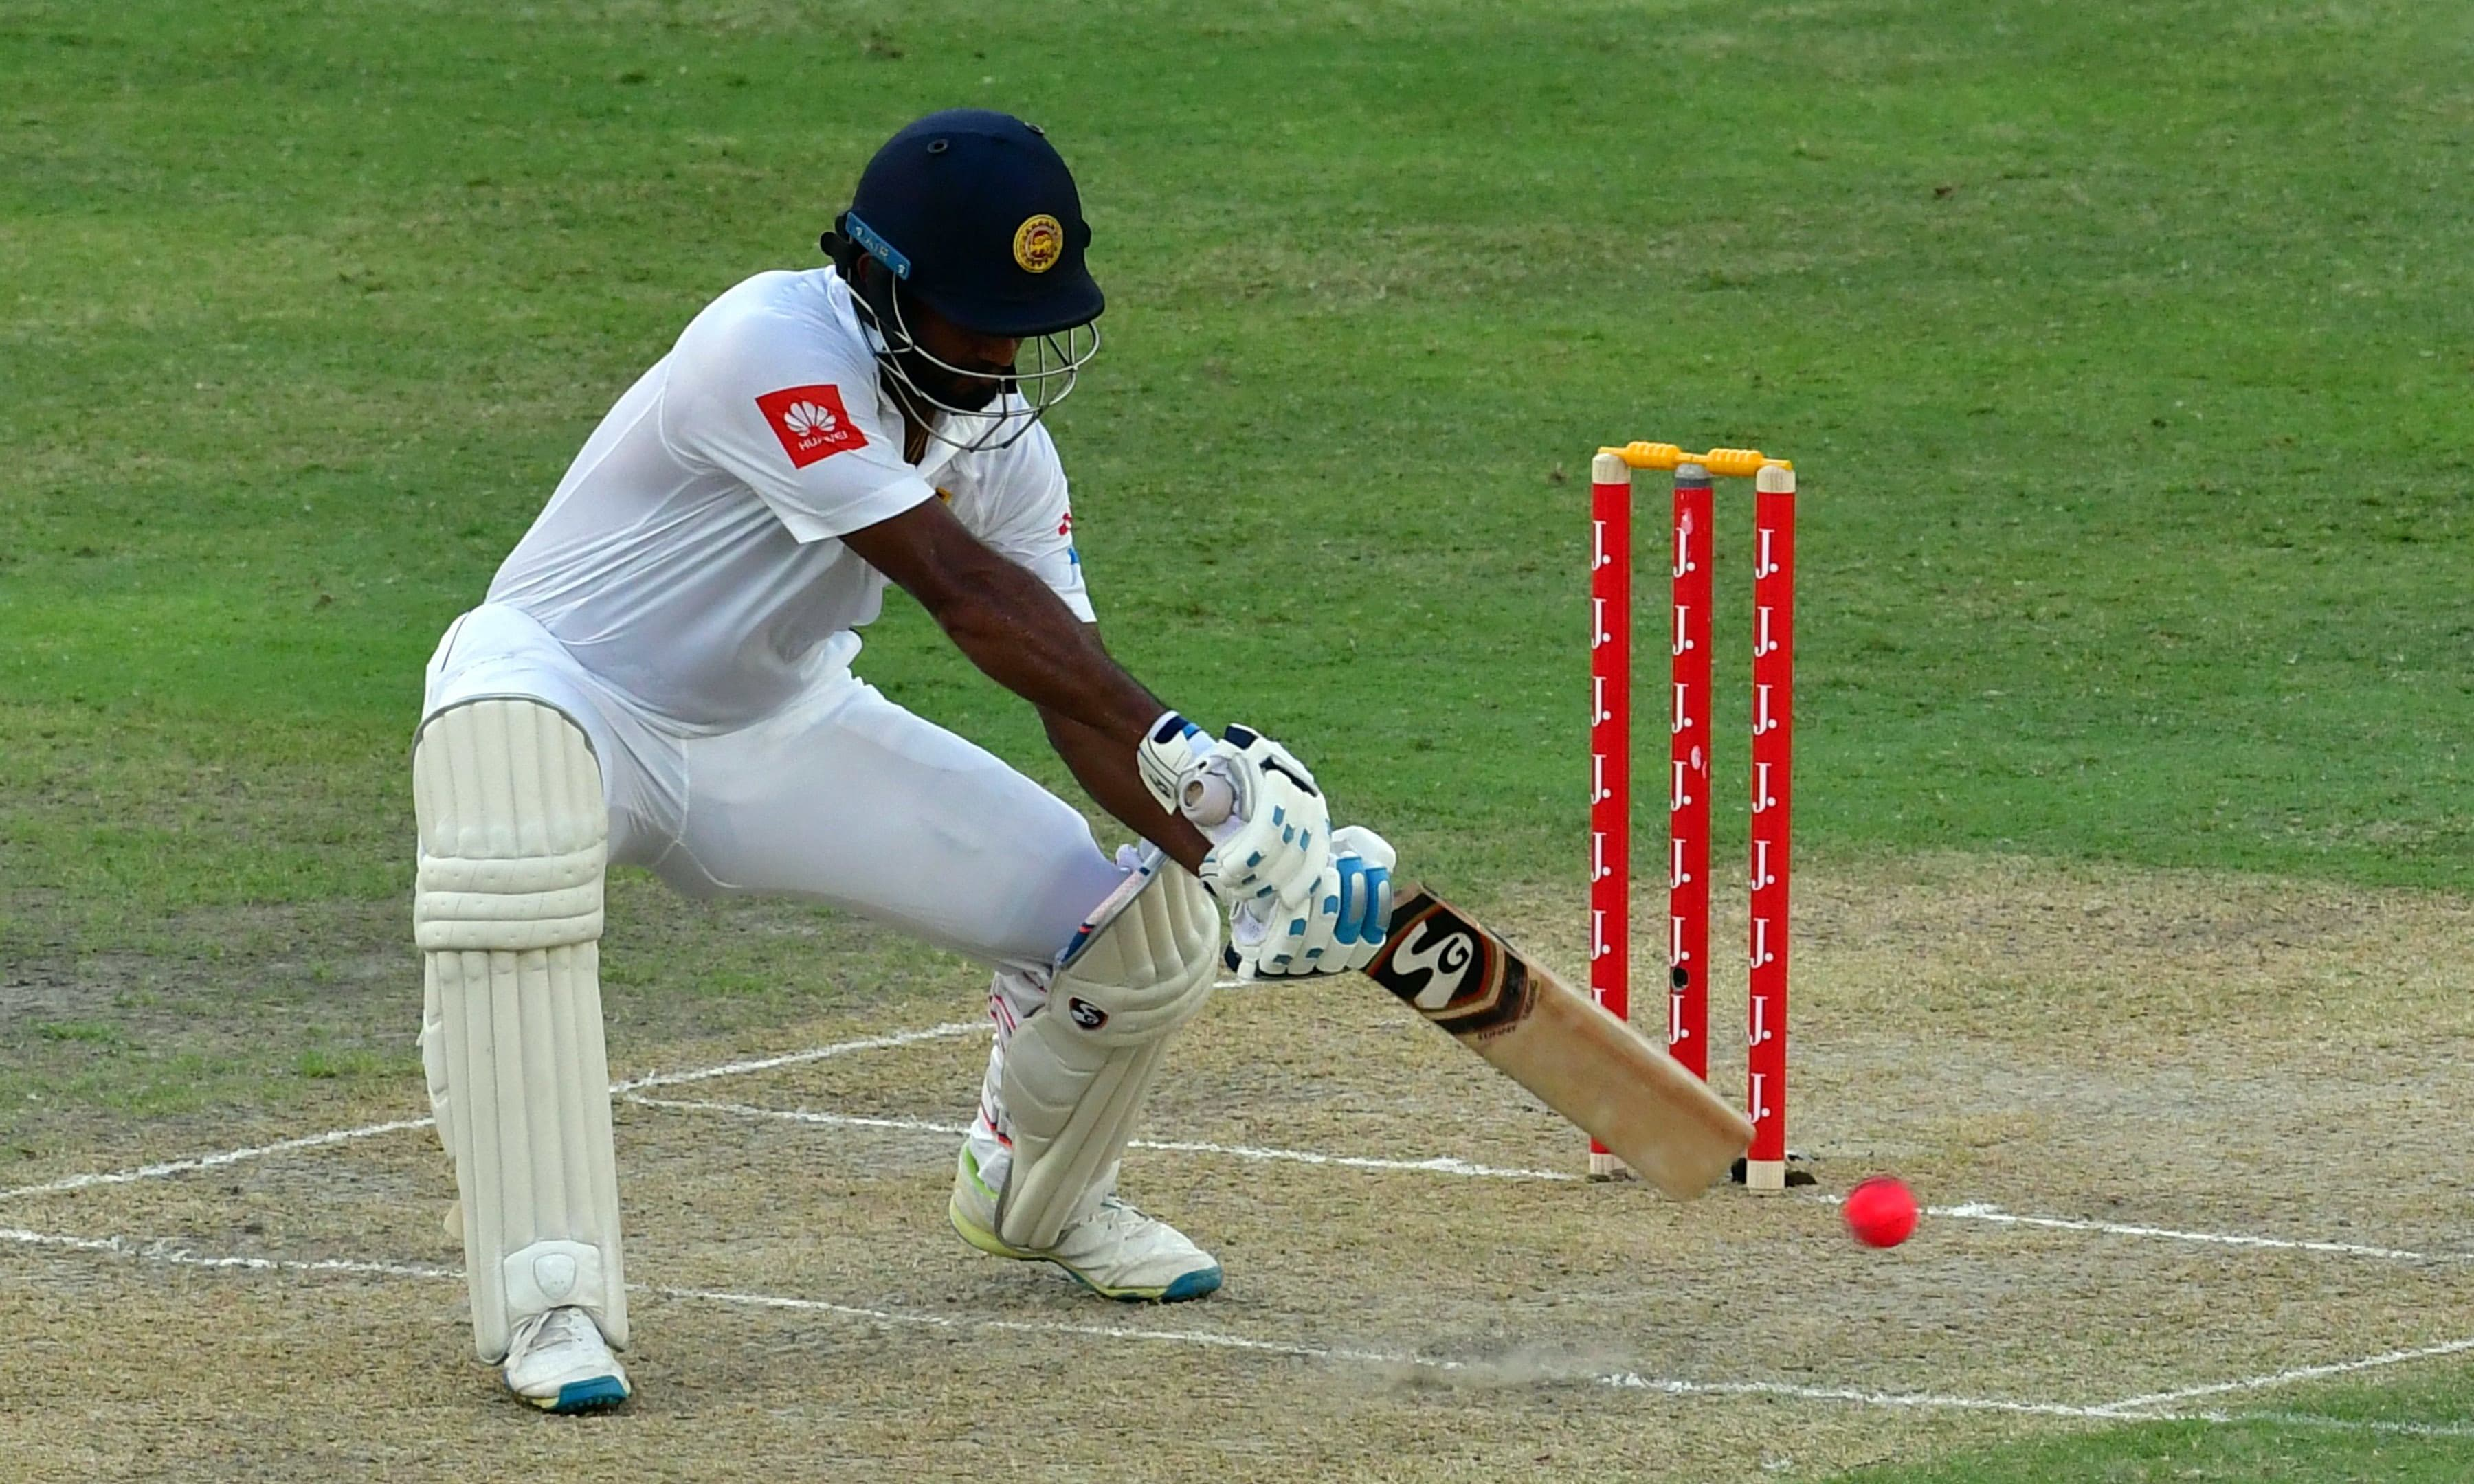 Sri Lanka stutters in second dig after taking big lead